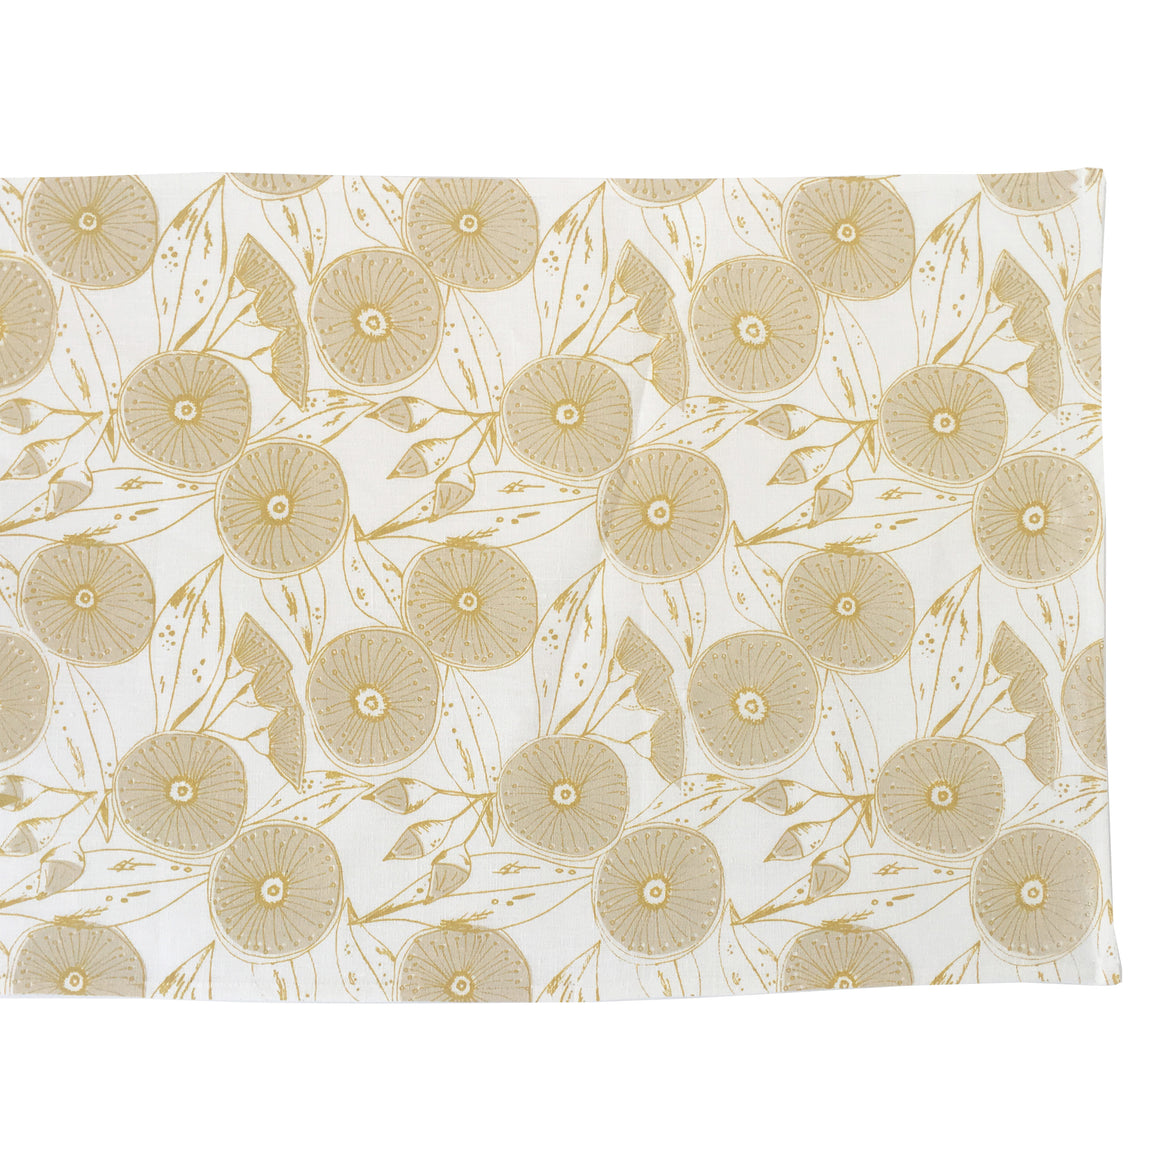 Gum Flower Table Runner Cream